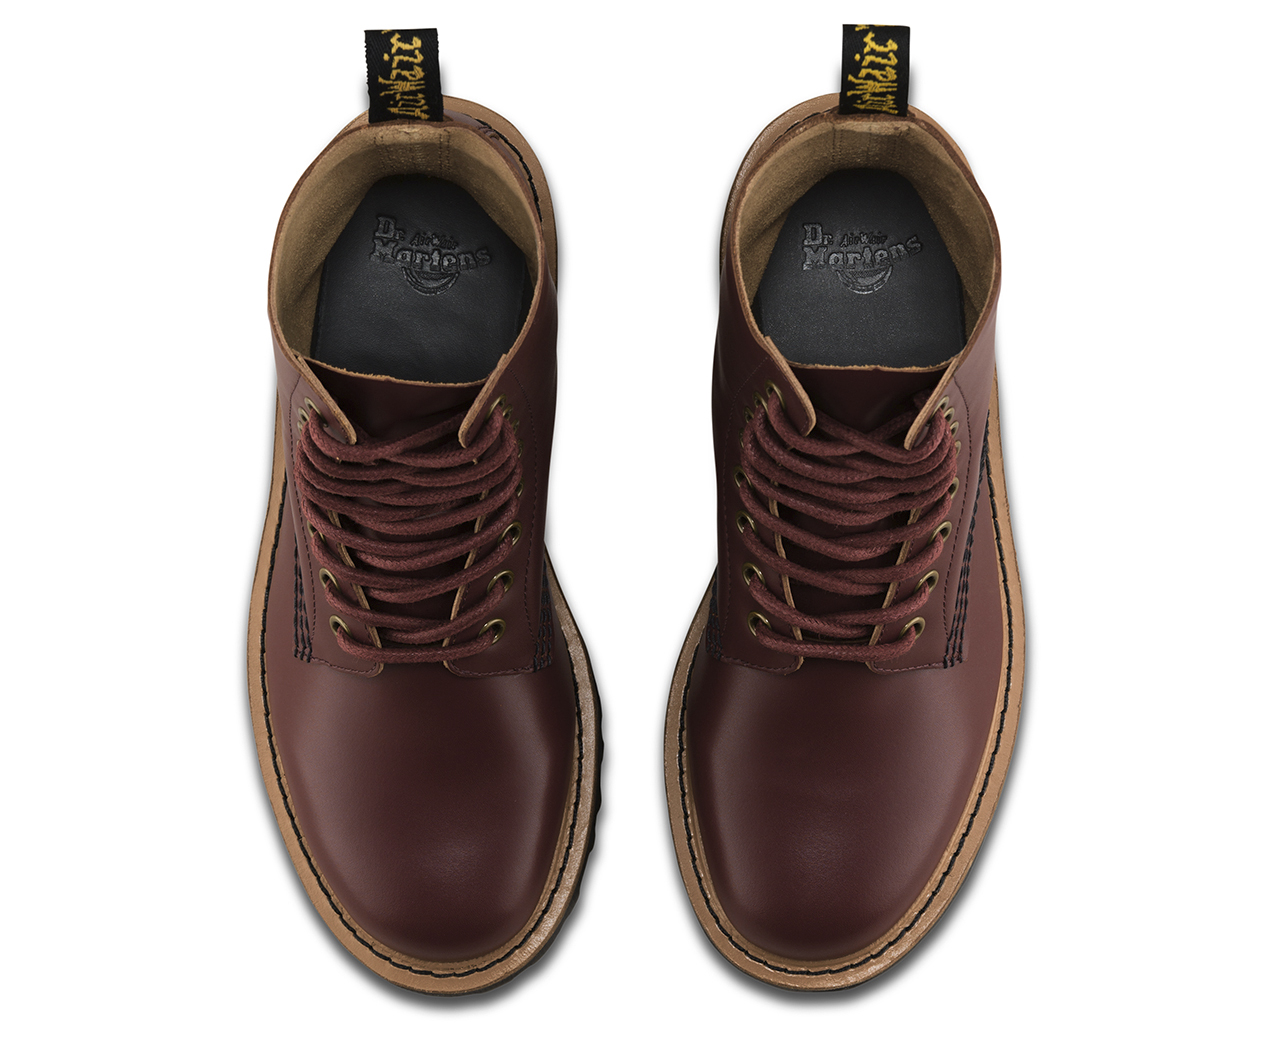 DR MARTENS 1460 PASCAL II